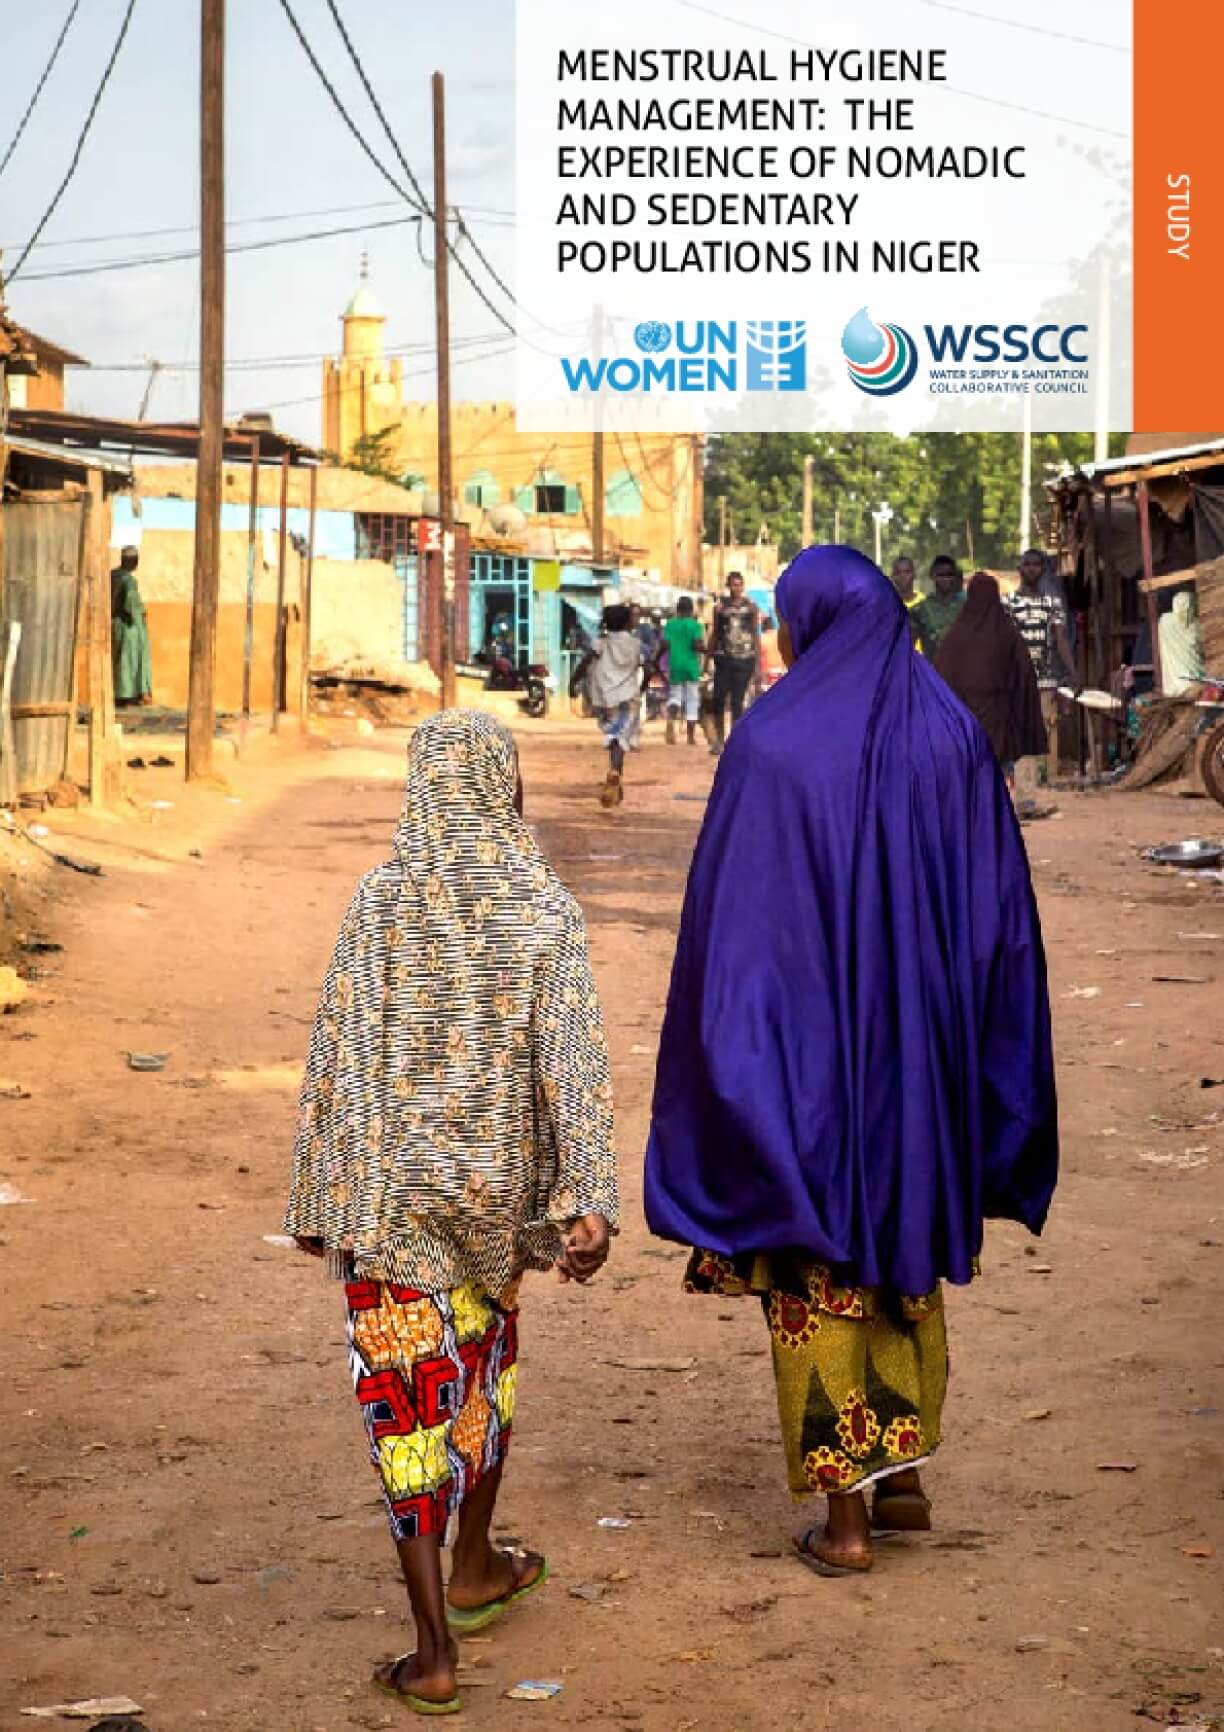 Menstrual Hygiene Management: The Experience of Nomadic And Sedentary Populations in Niger